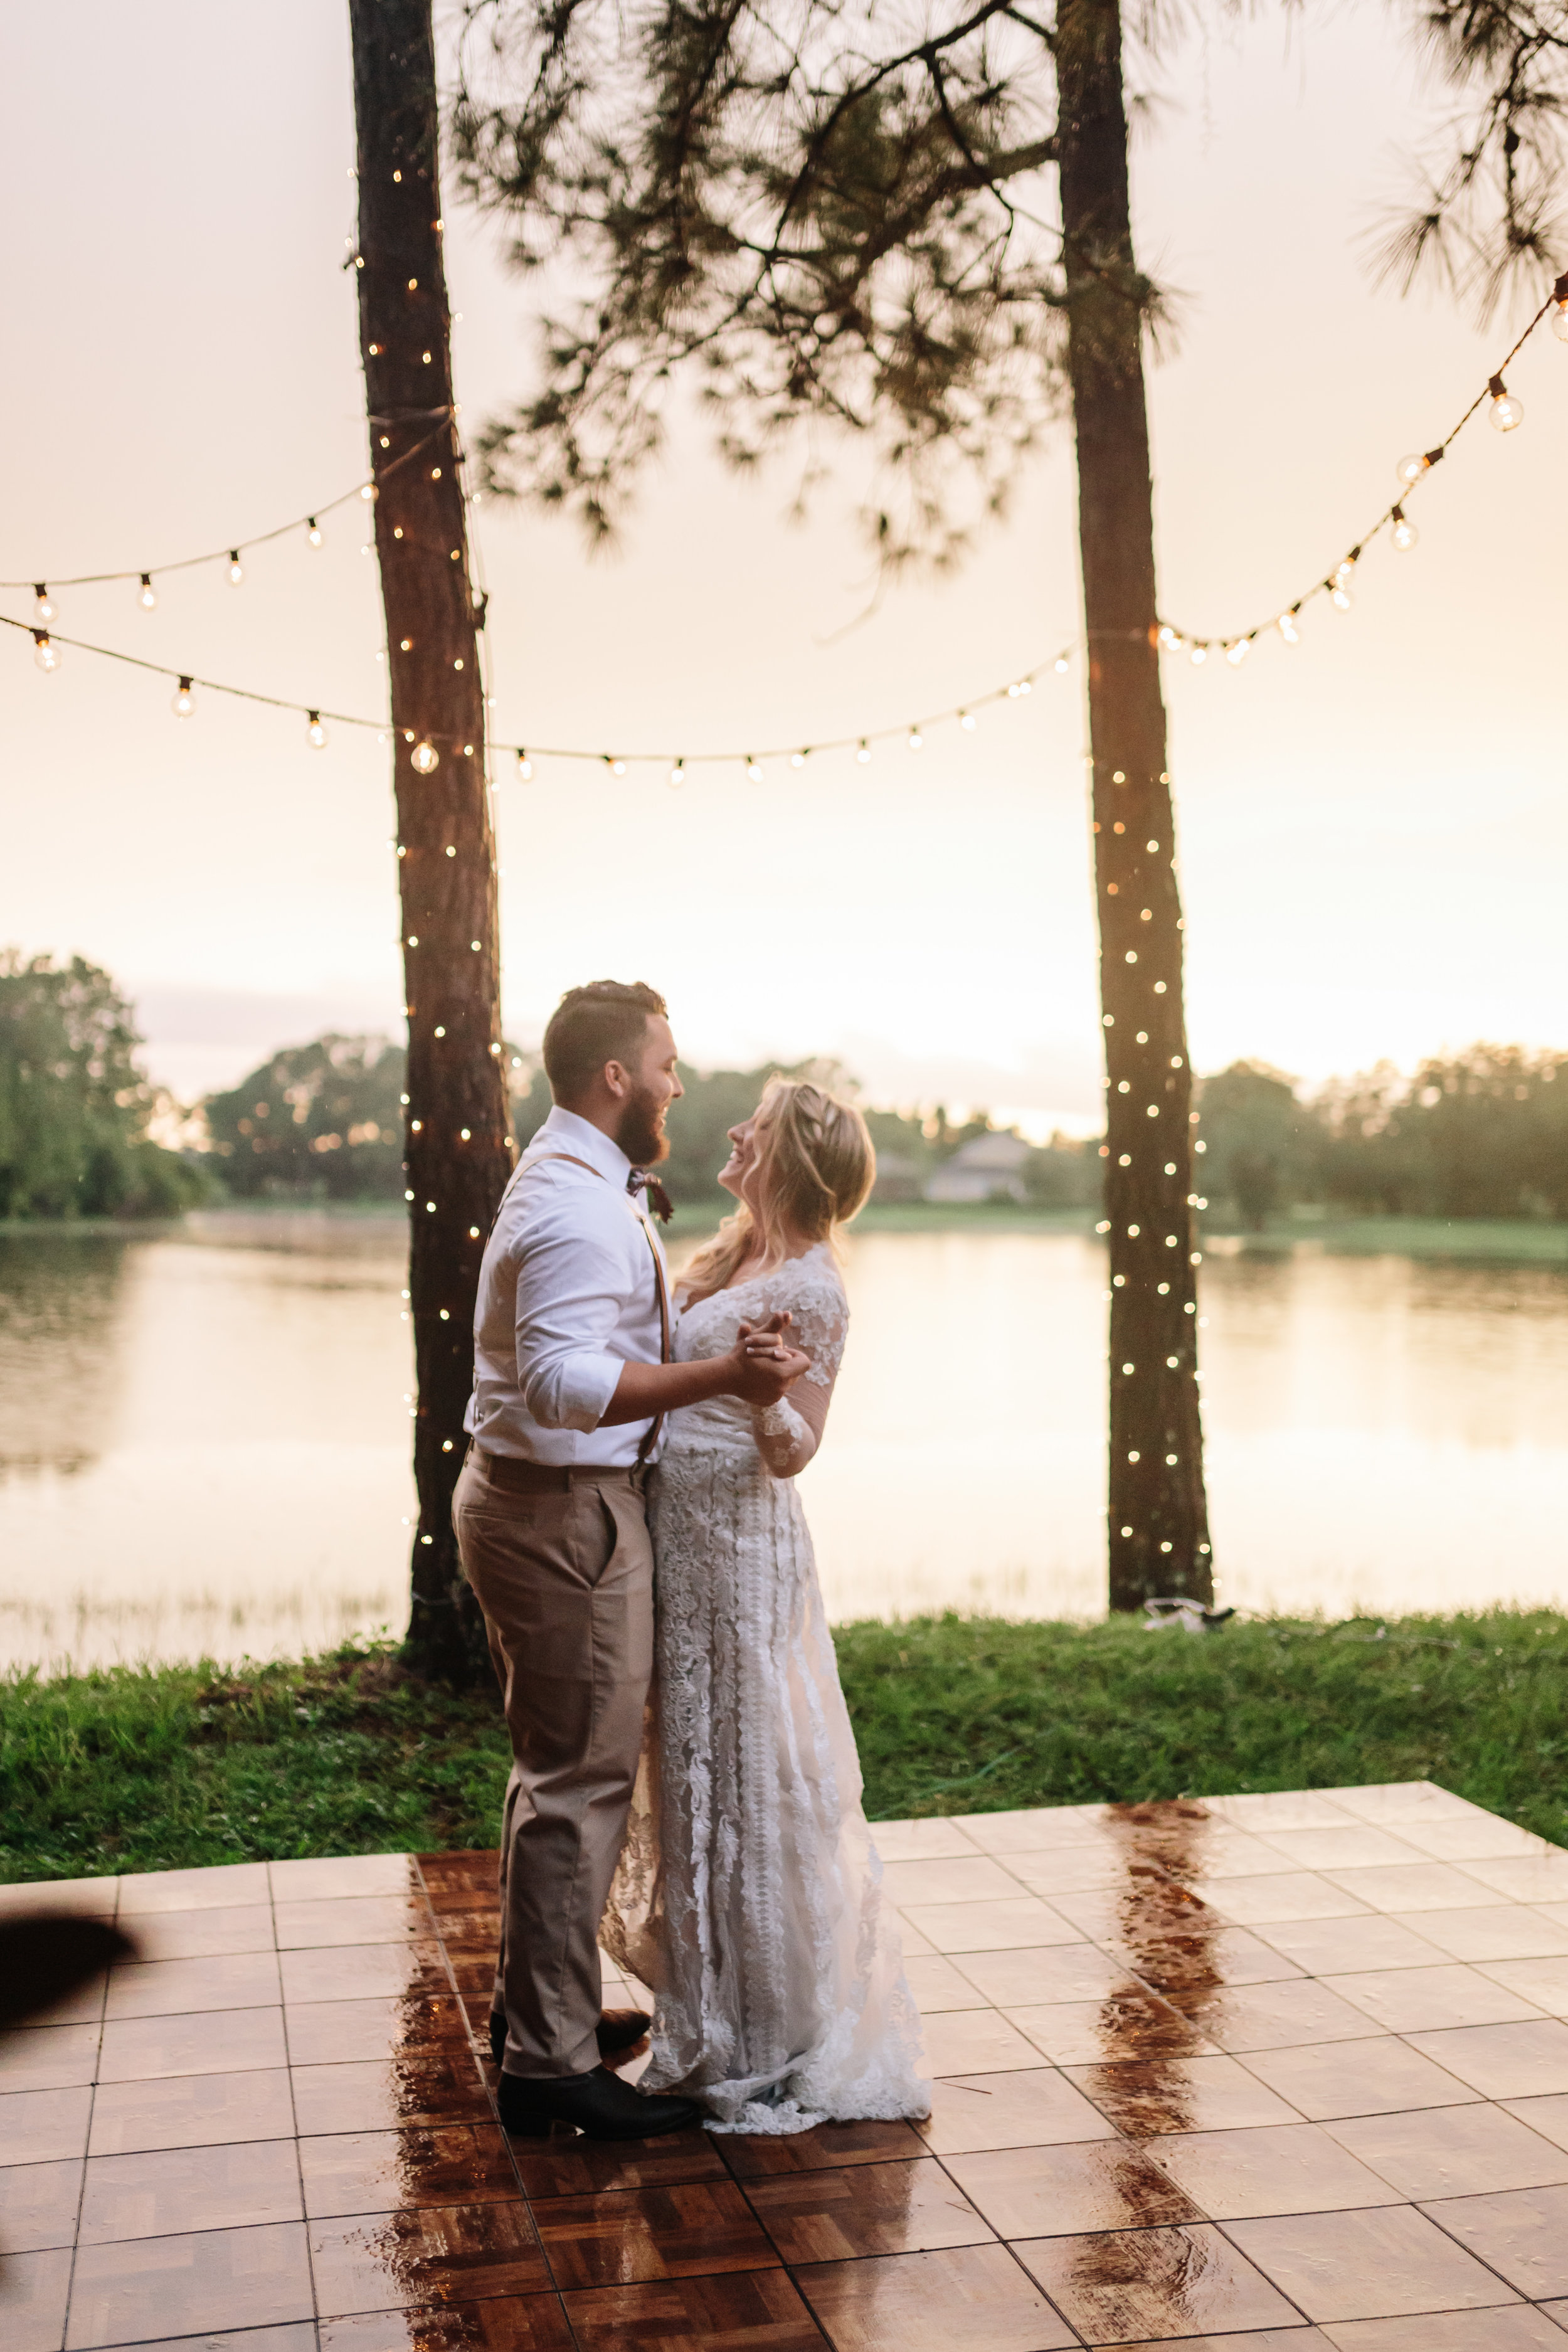 2018.07.28 Brooke and Korey Arnold Winter Springs Wedding FINALS-683.jpg